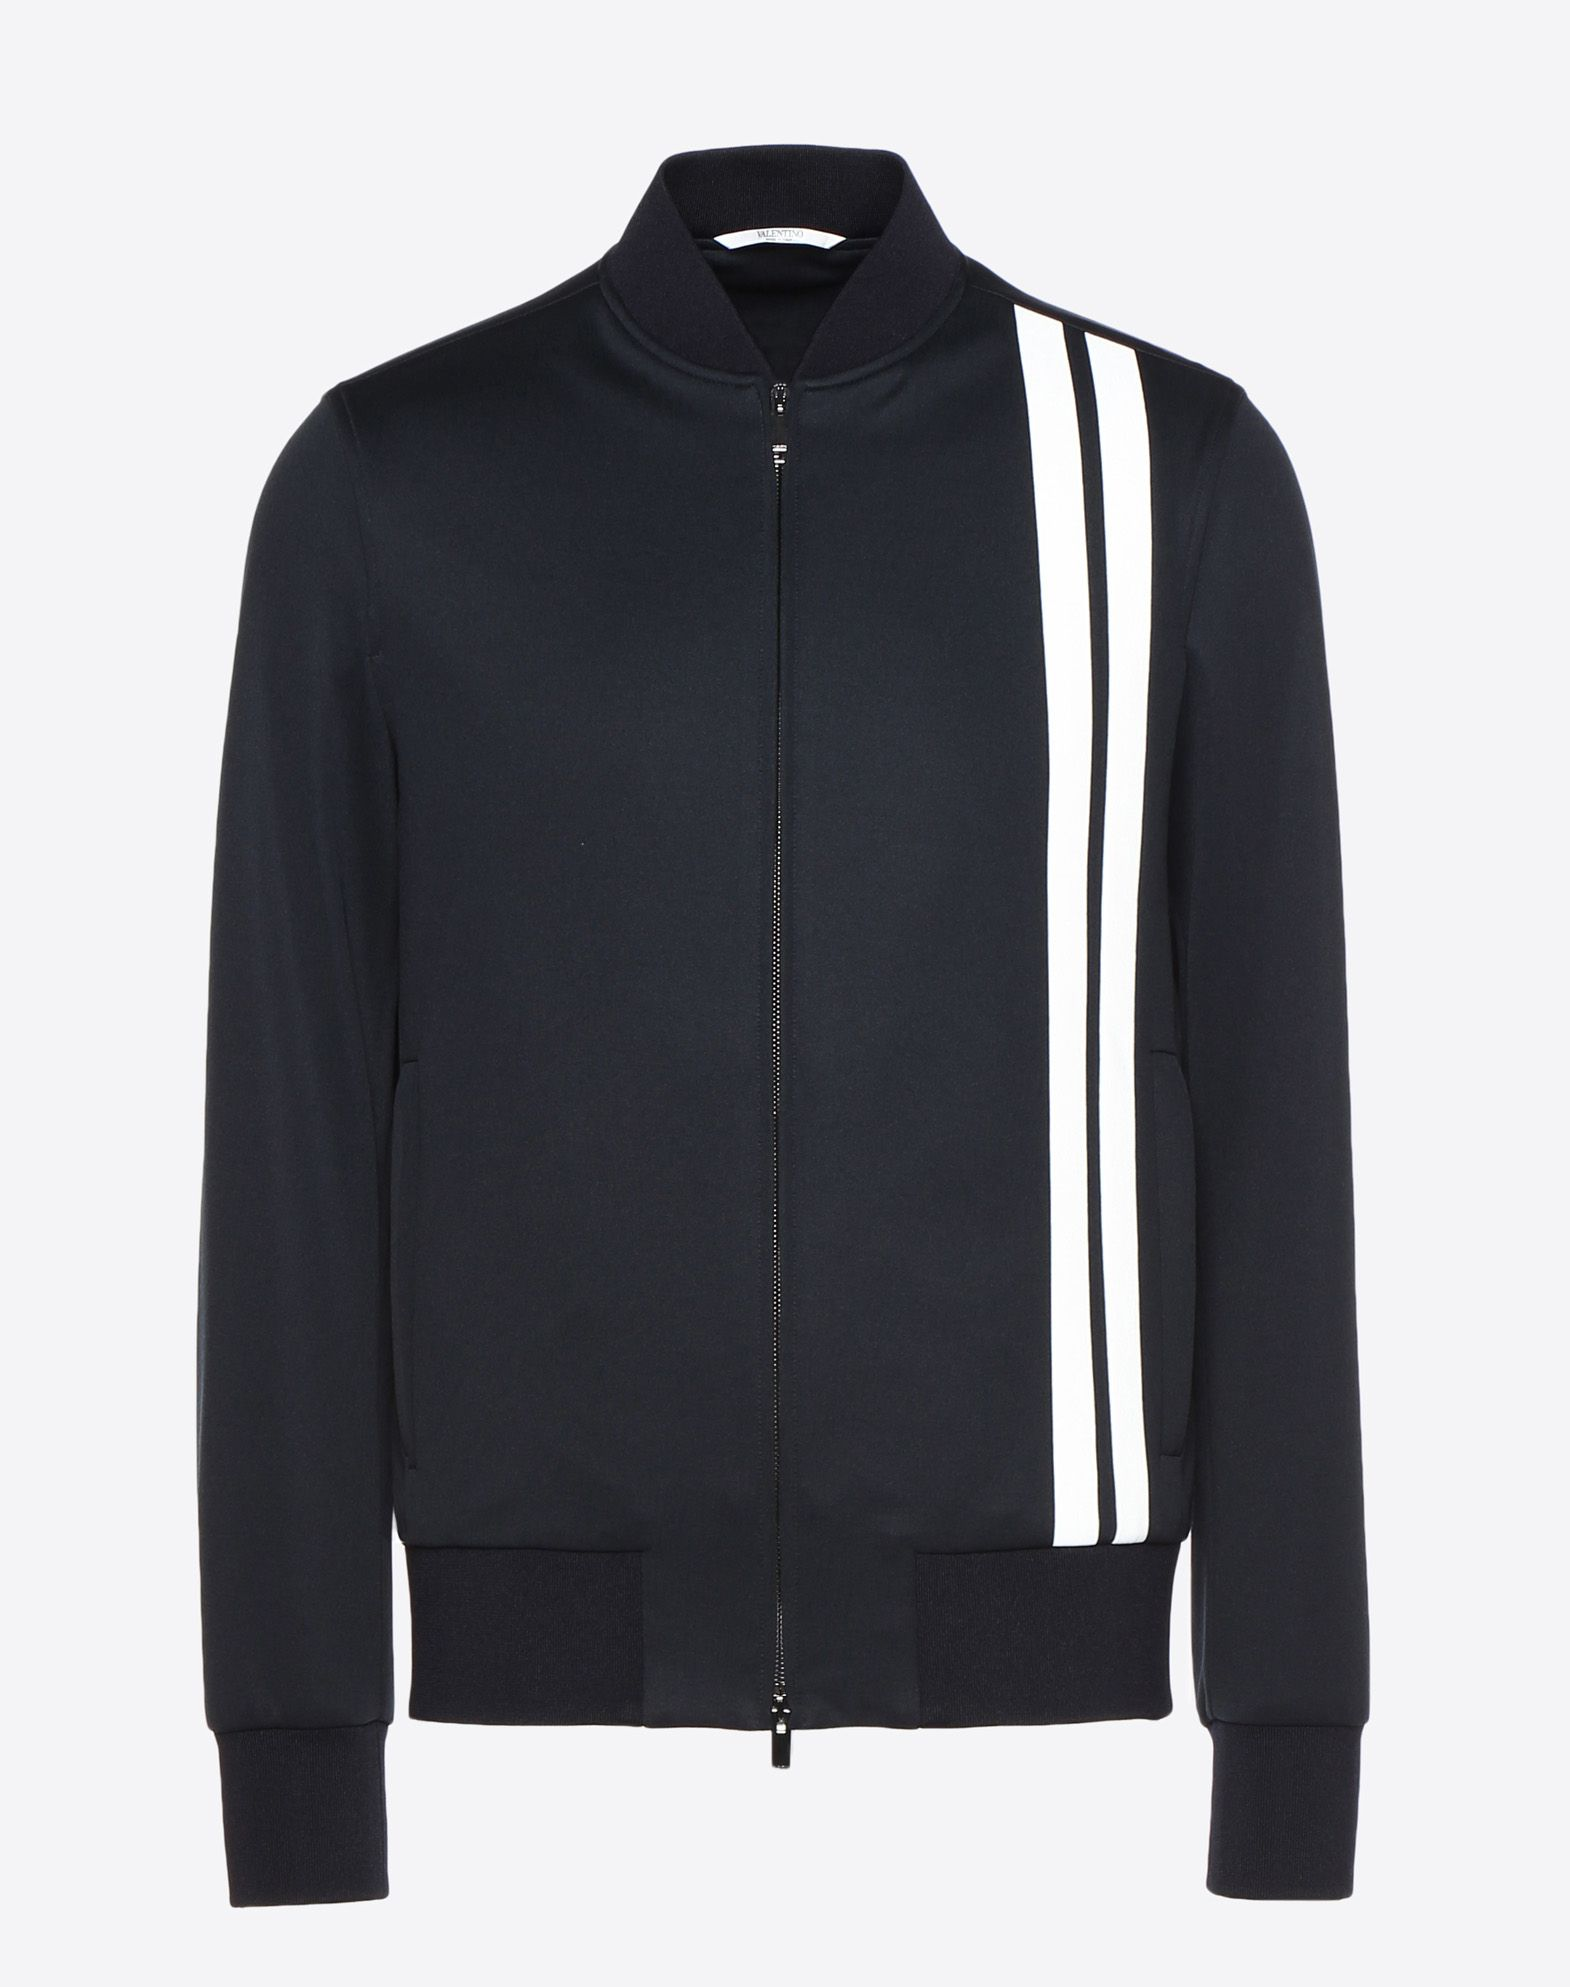 VALENTINO Vertical stripe inlays sweatshirt with VLTN logo JACKET U f